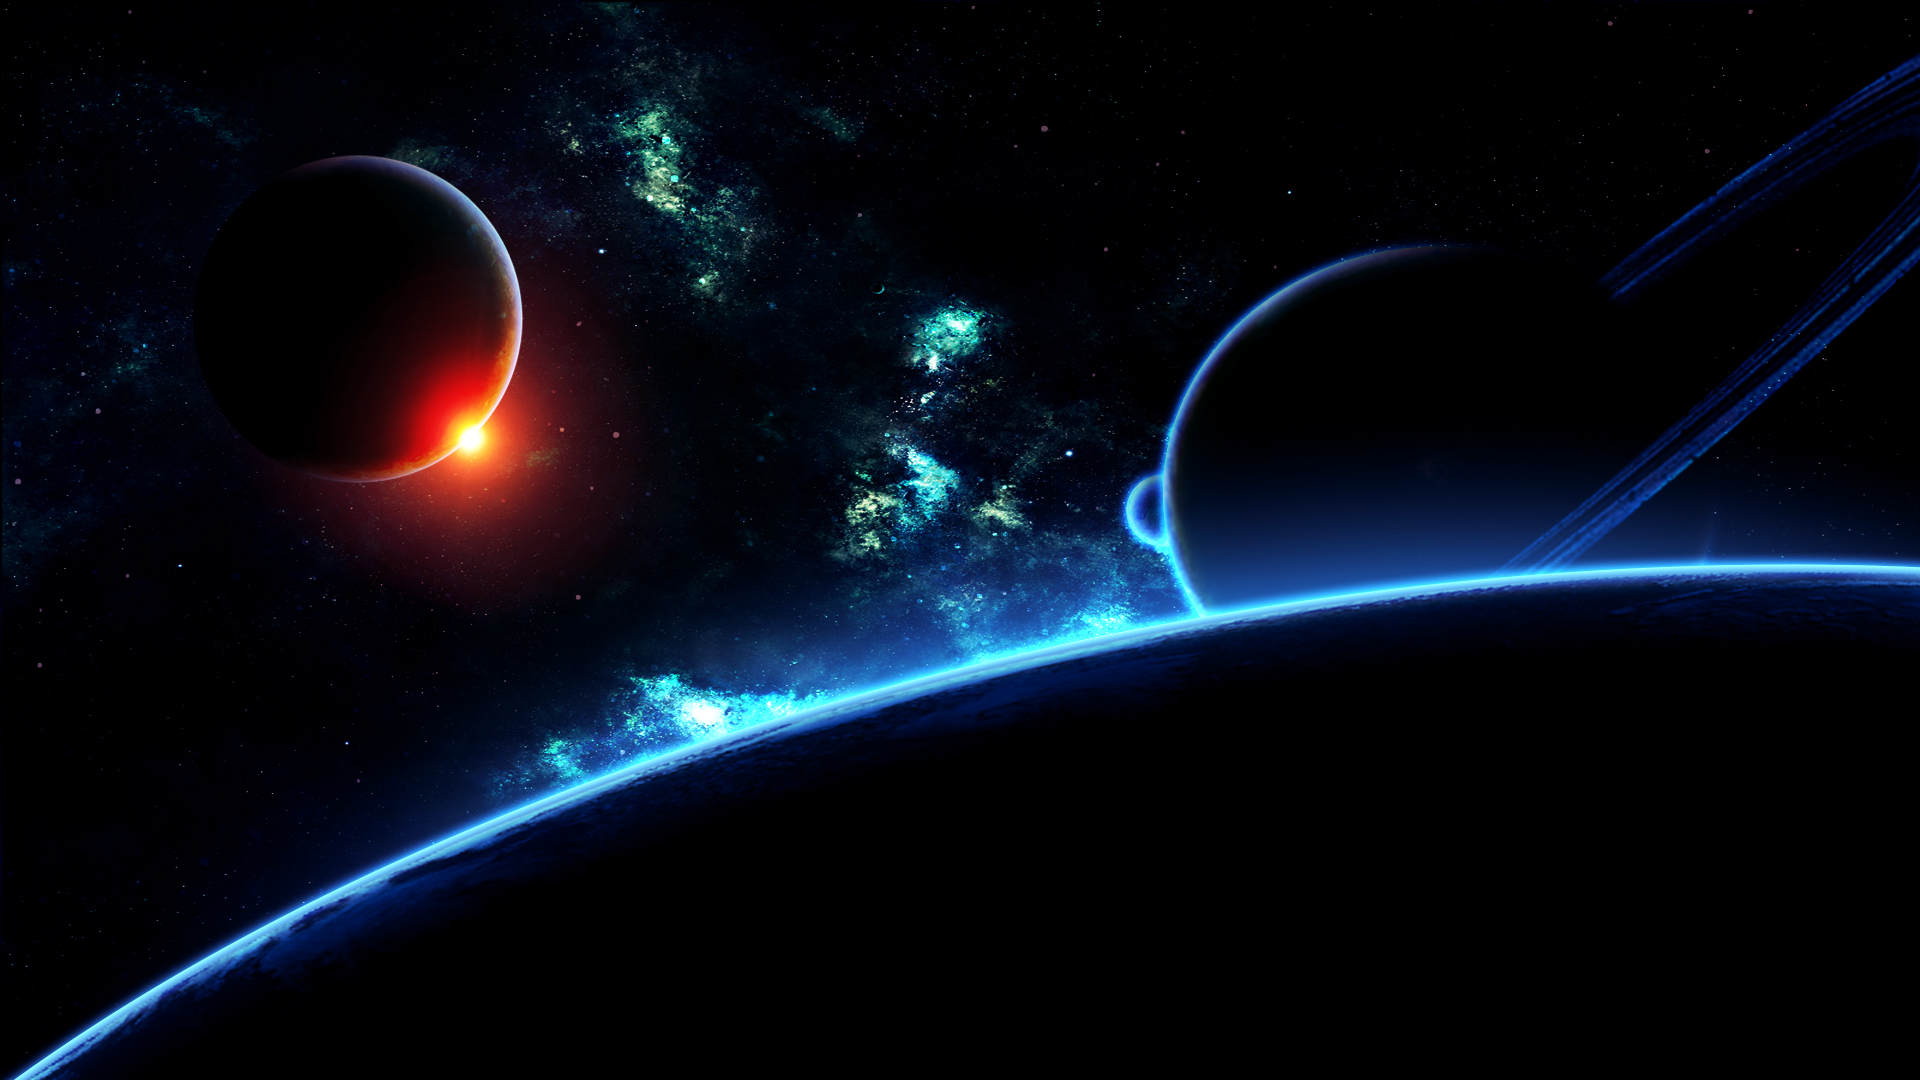 12 top wallpapers of outer space fit for any device